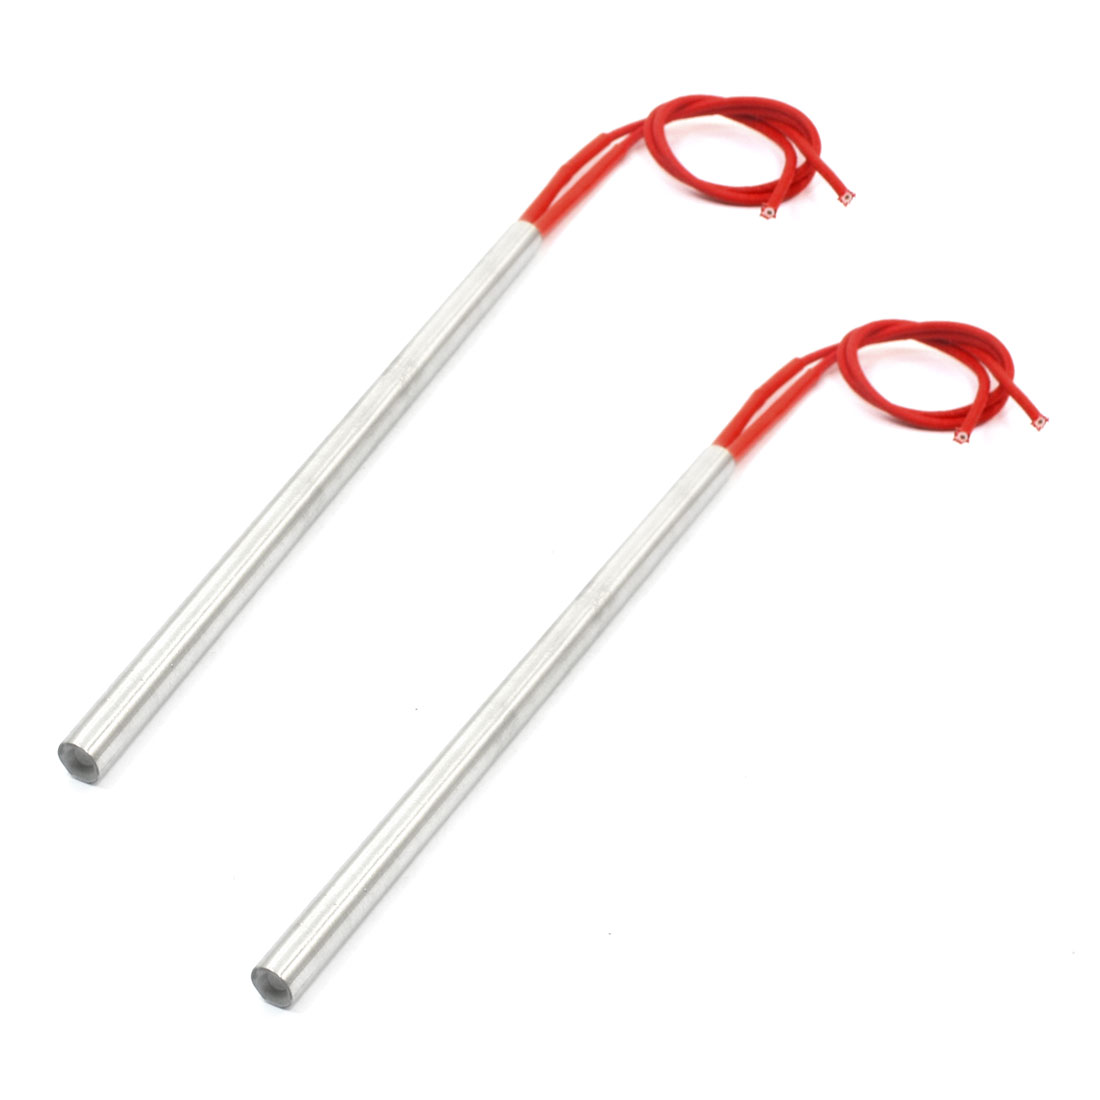 9.5 x 200mm Cylinder Shaped Red Dual Wire Electric Mold Single End Heating Tool Cartridge Heater 110V 800W 2pcs